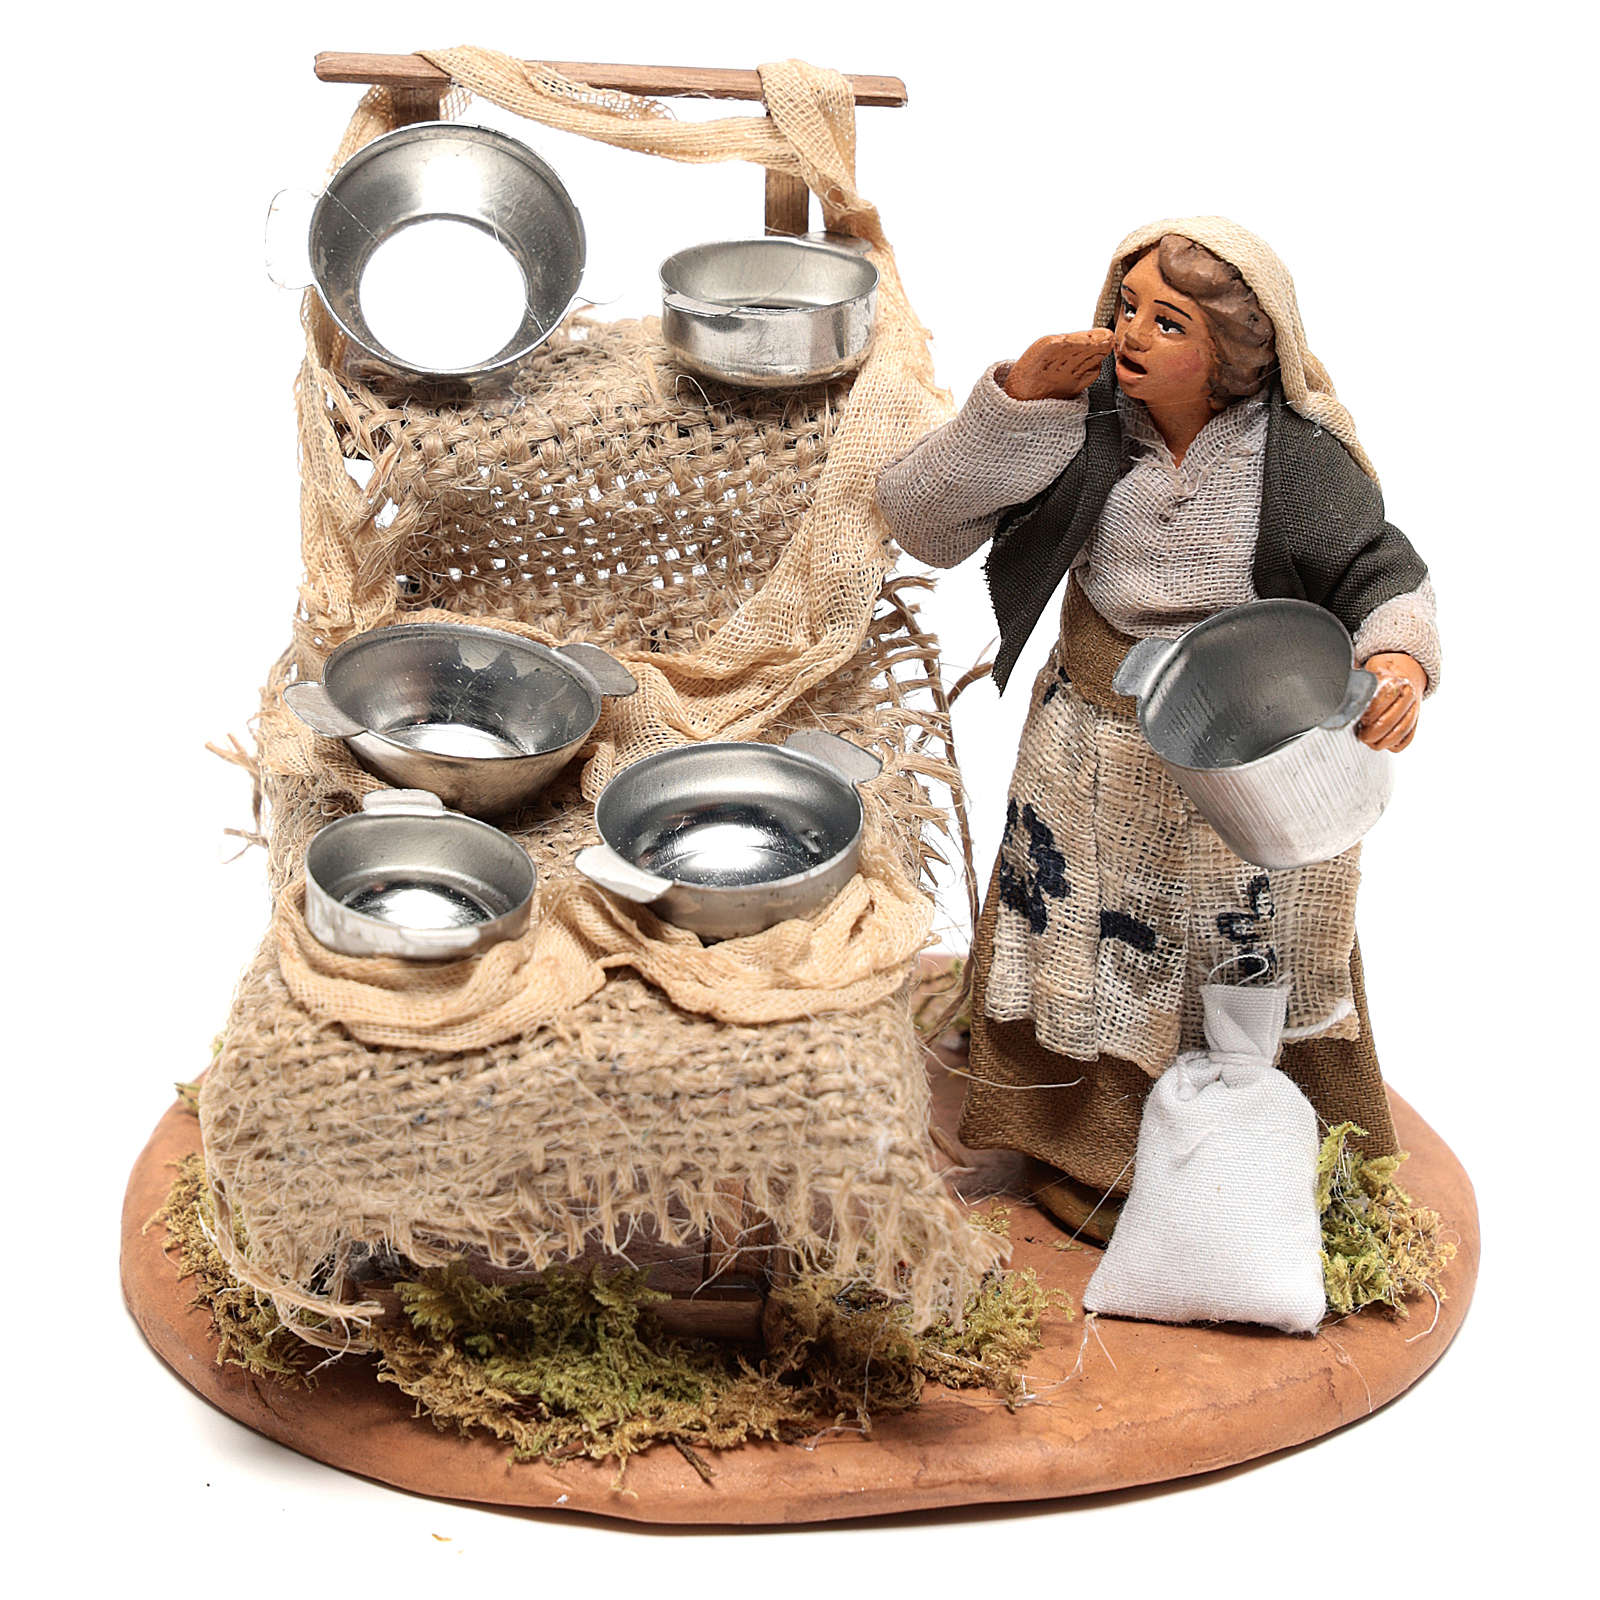 Pot seller 10x10x10 cm for Neapolitan Nativity Scene of 10 cm 4